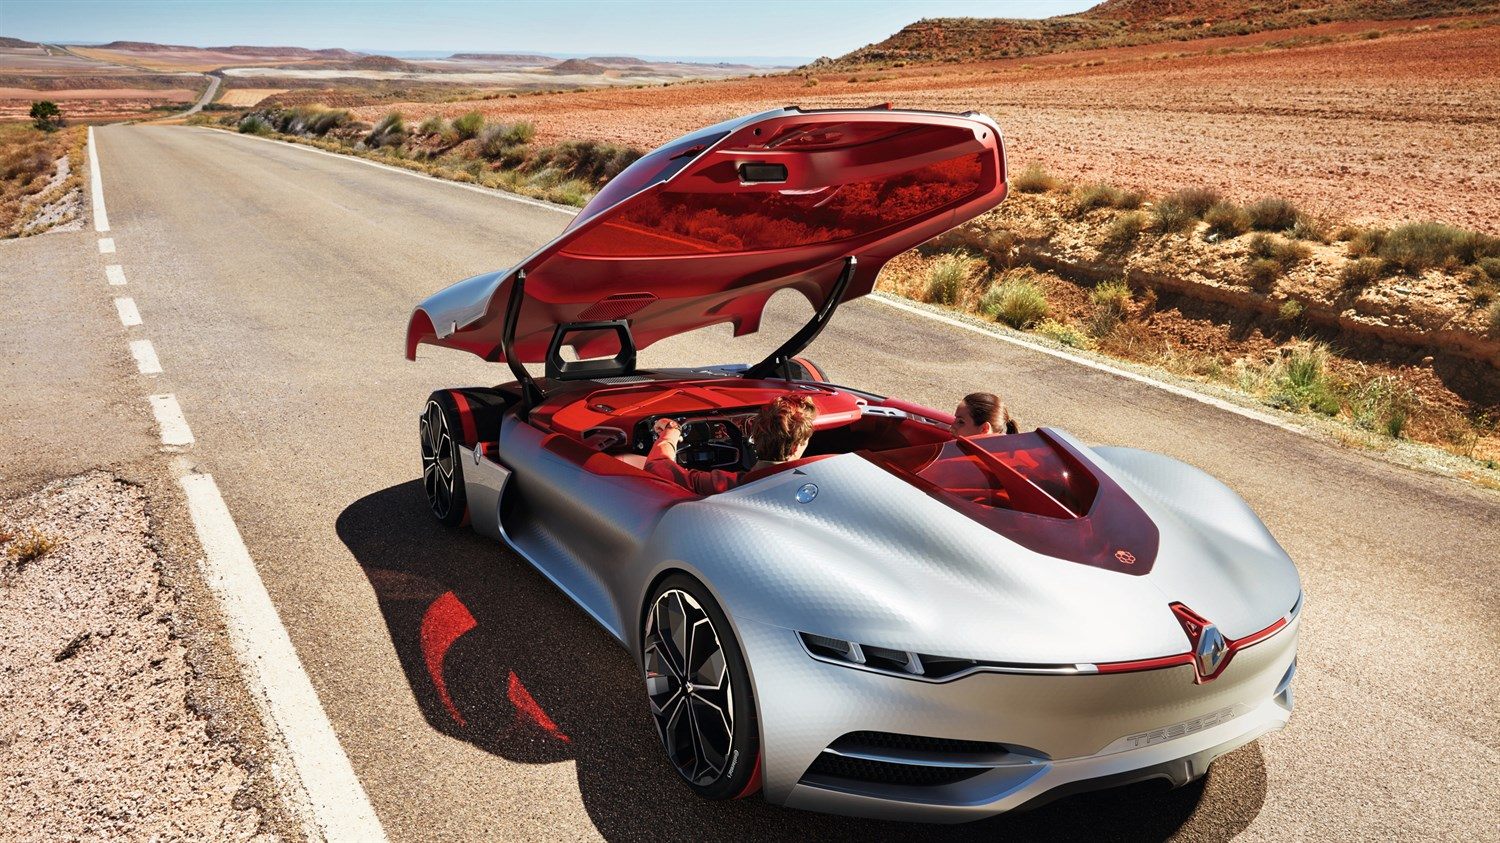 Renault TREZOR concept car top view with the sliding roof door open